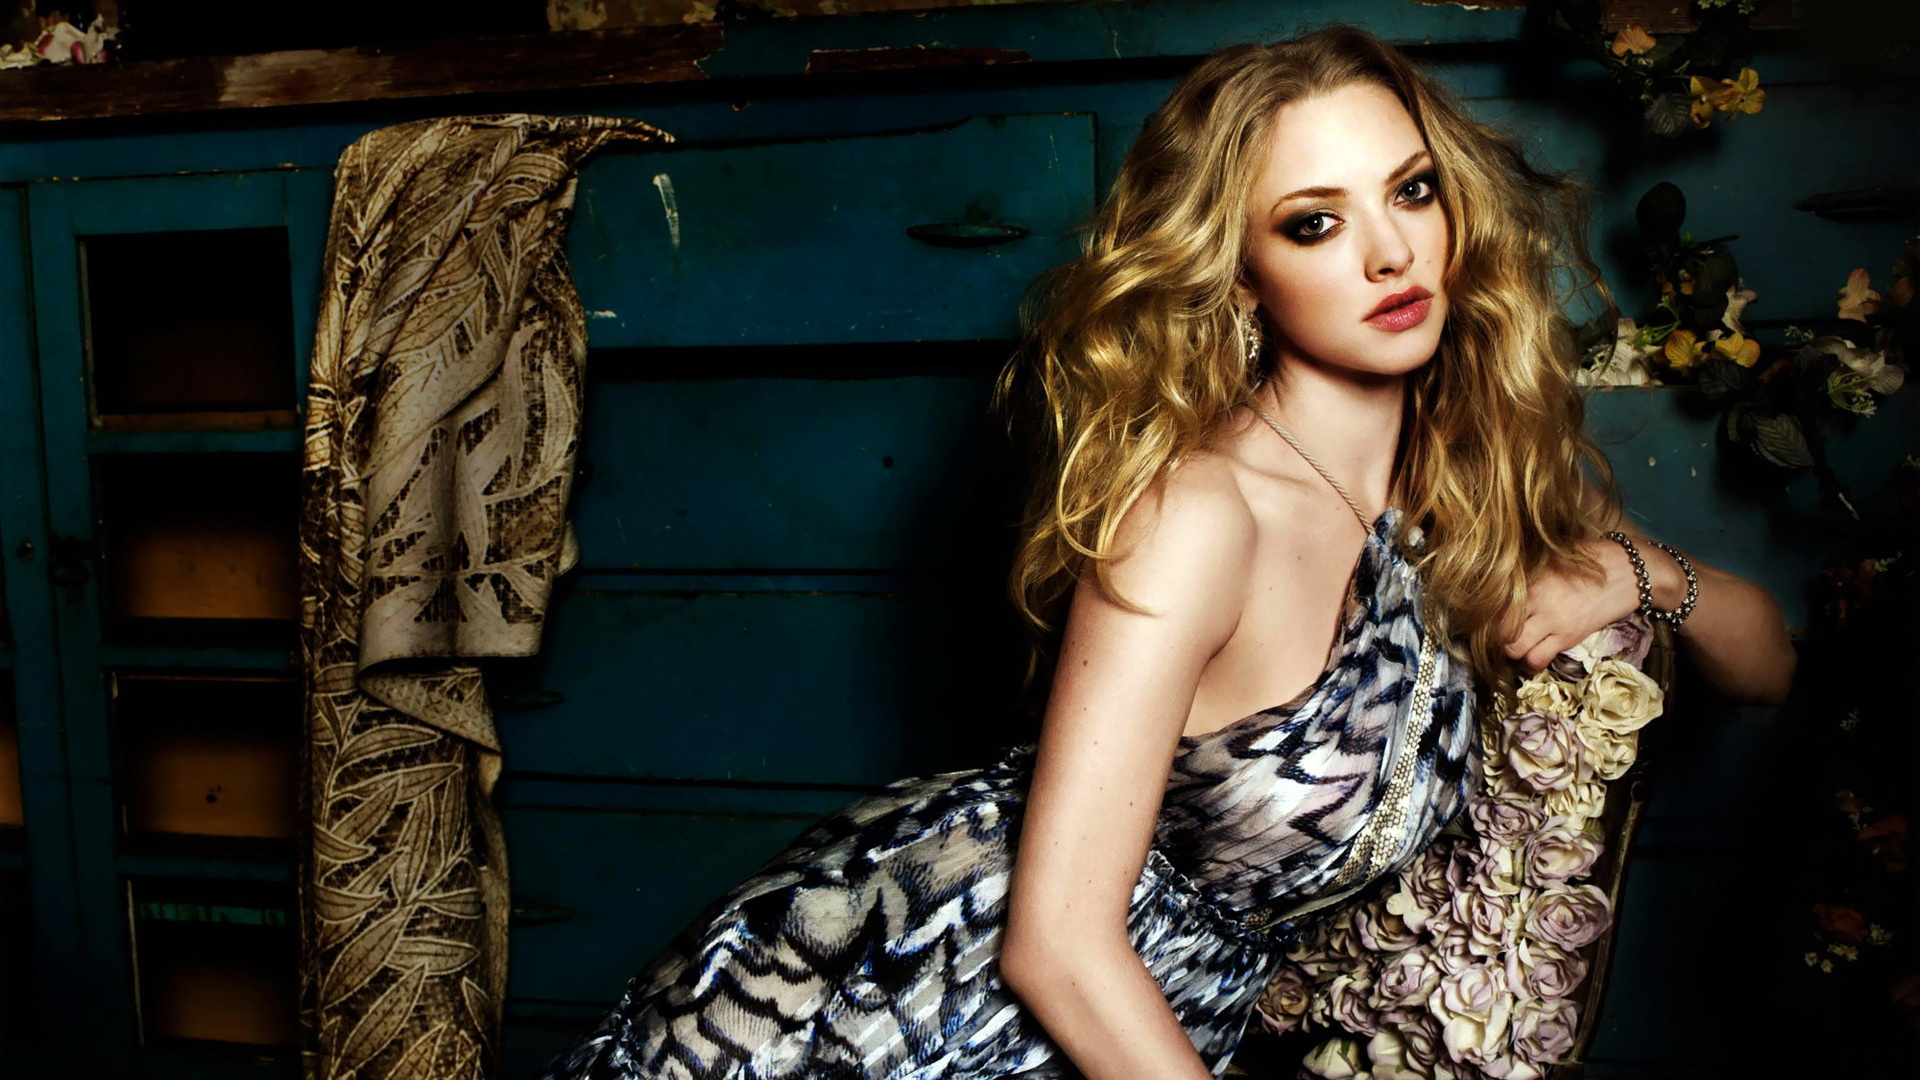 amanda seyfried PICTURES hd A10